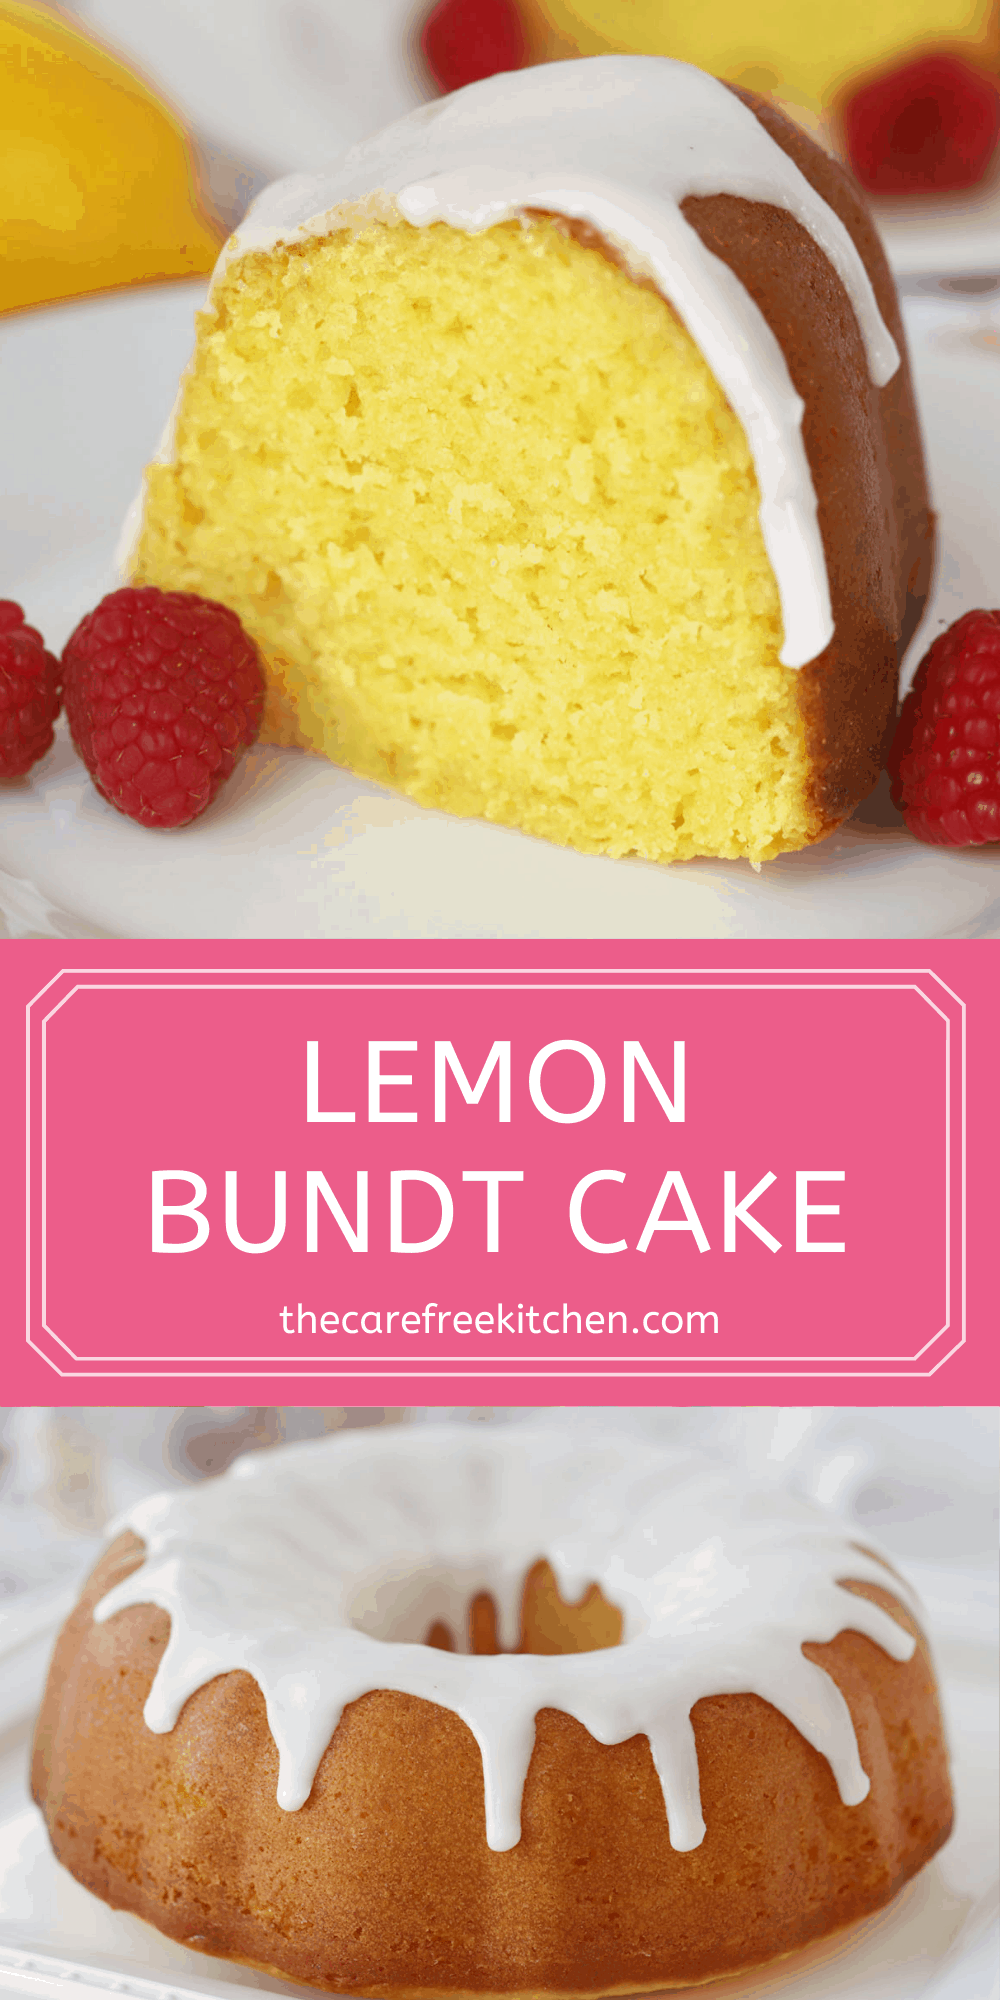 Pinterest pin for lemon bundt cake recipe